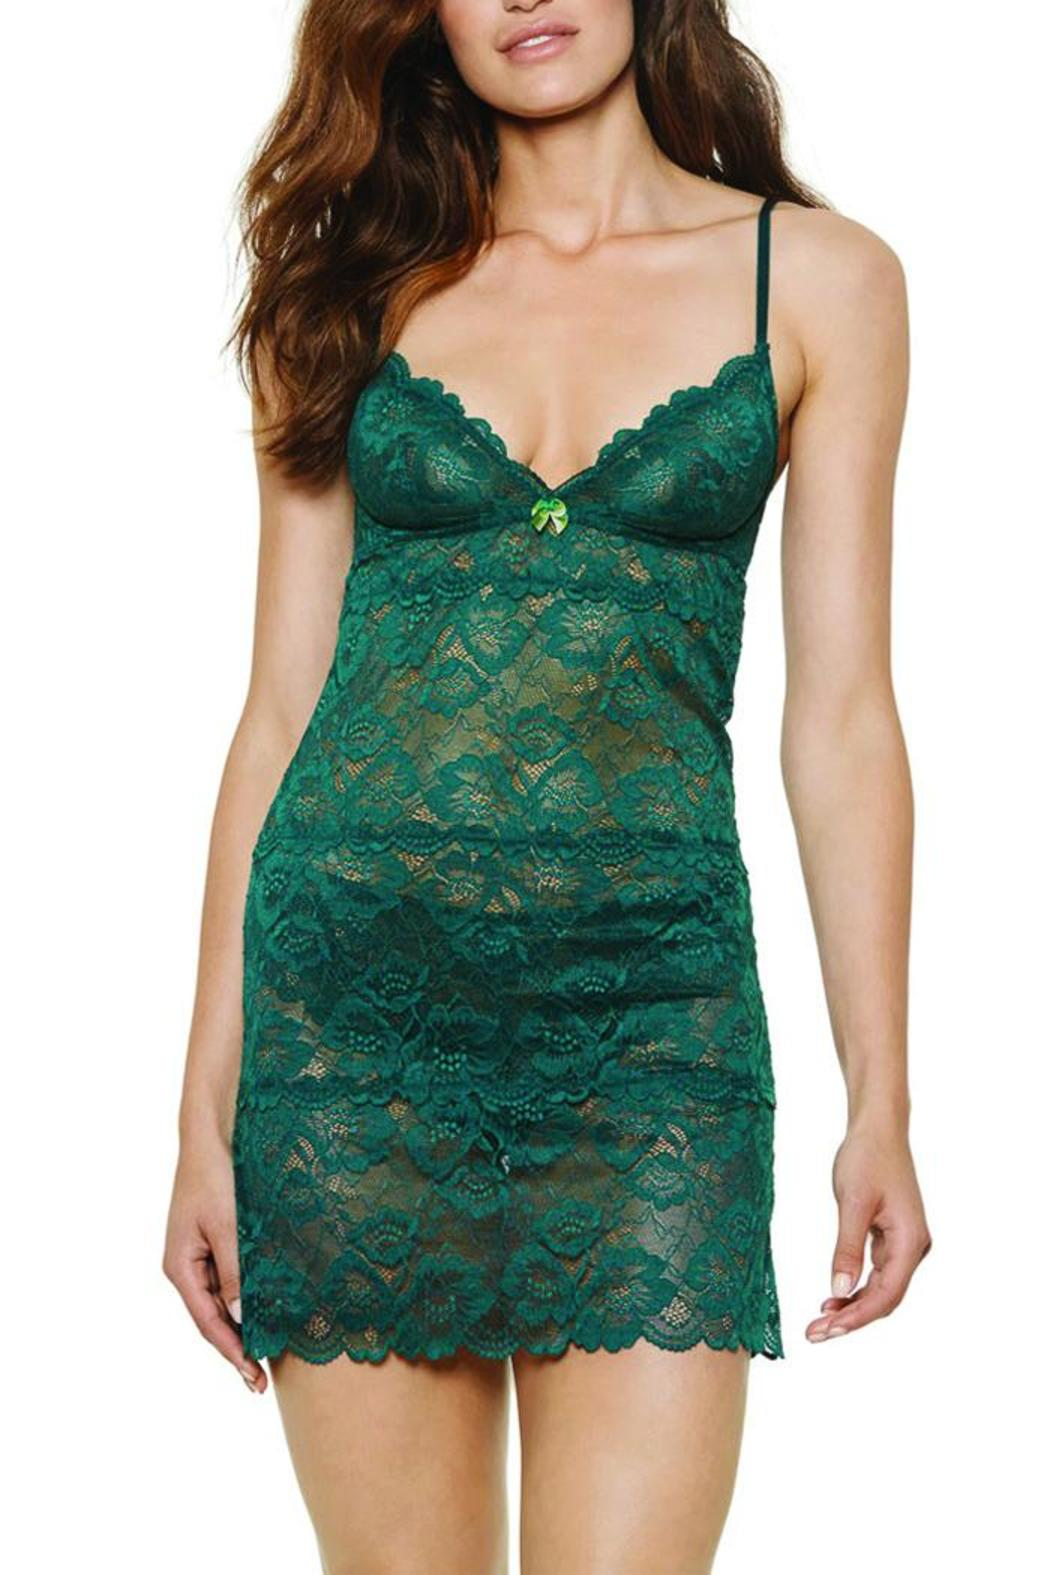 Blush Lingerie Ivy Chemise From New York By Luna